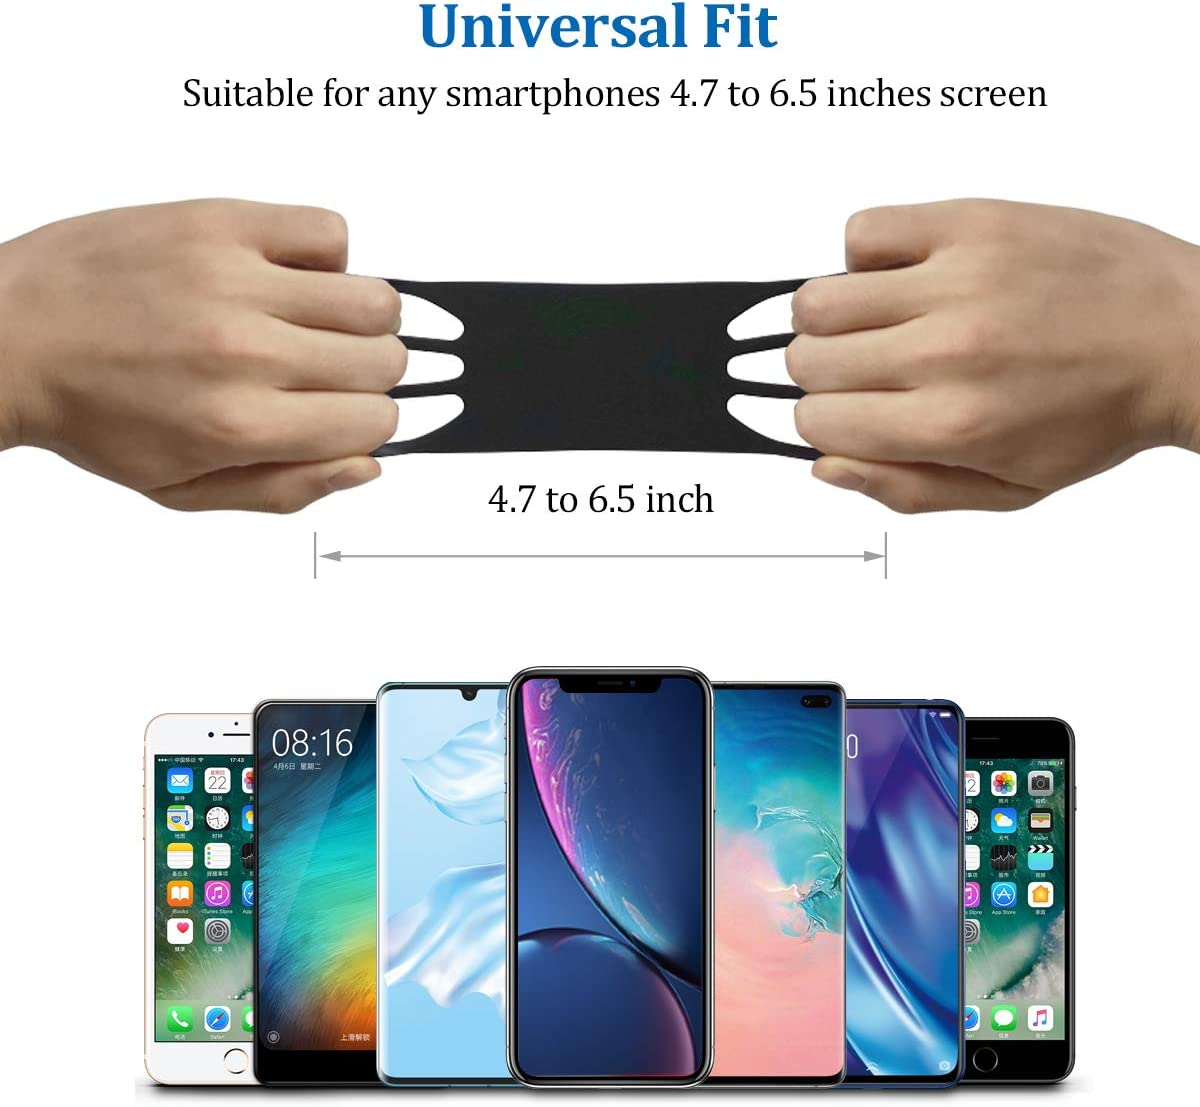 Quick Mount Running Phone Armband Wrist Band Cell Phone Holder Sport Arm Band Universal Fit for iPhone 11 Pro Max//XS//XR//8 Plus//8//7//6s Galaxy S20 S10 //S20//S10///& /& Other 4.0-6.5 Holder Phone Armband